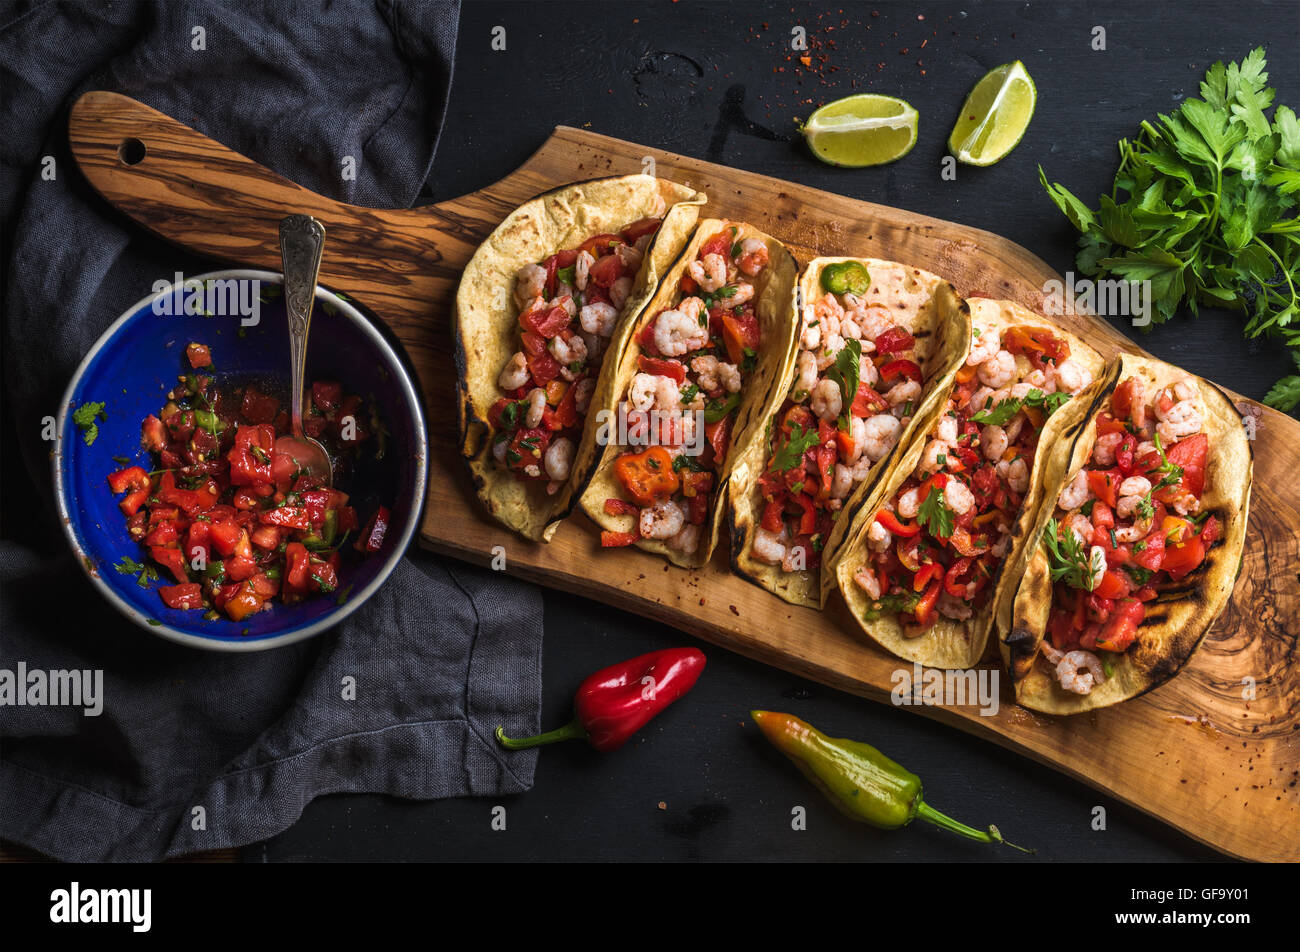 Shrimp tacos with homemade salsa, limes and parsley - Stock Image